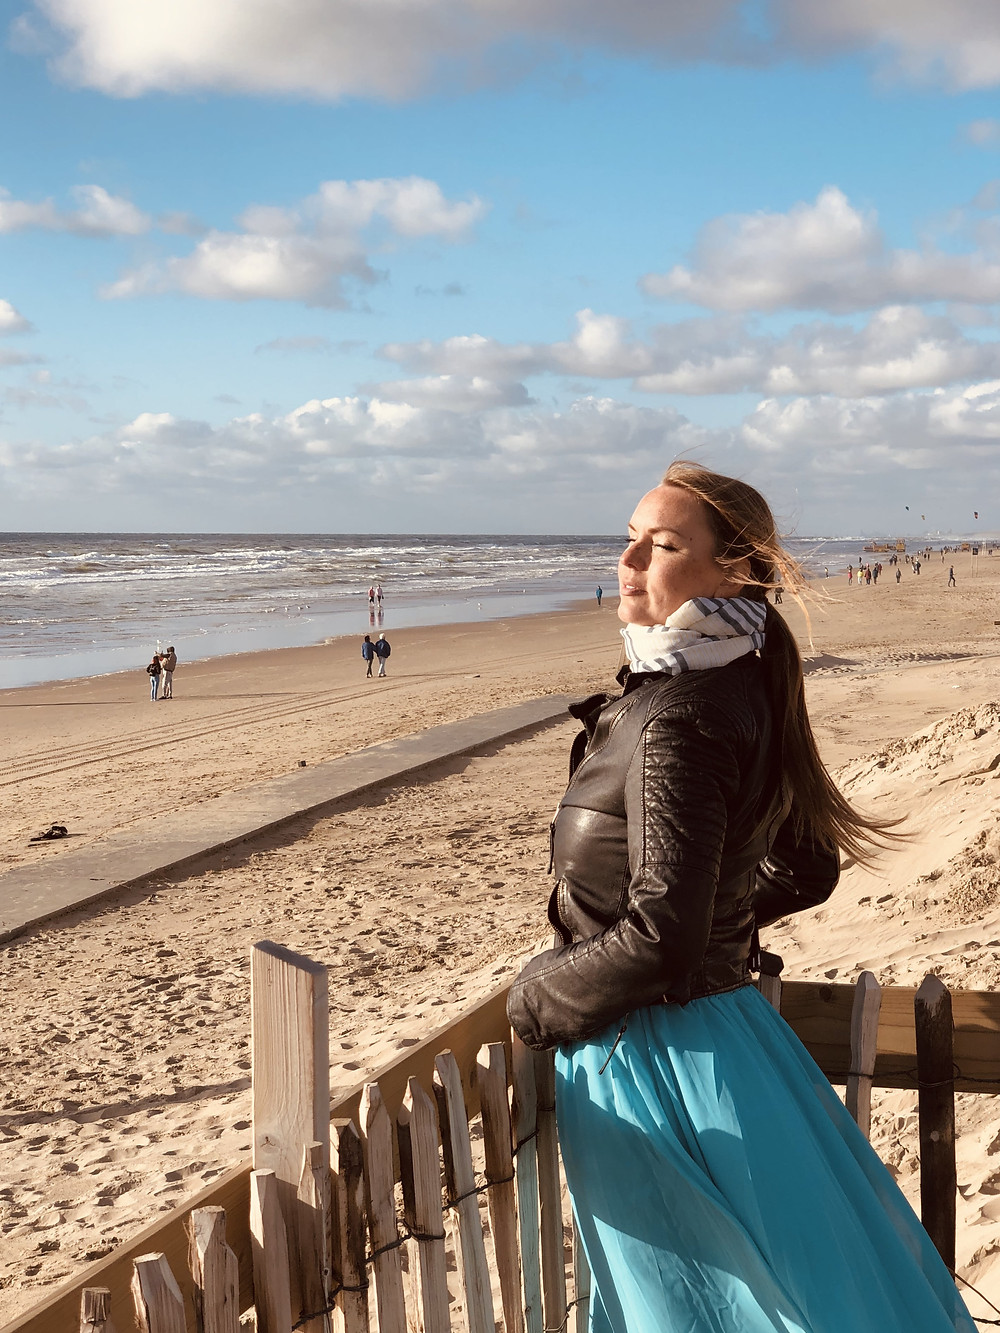 The beach of Noordwijk aan Zee - Netherlands